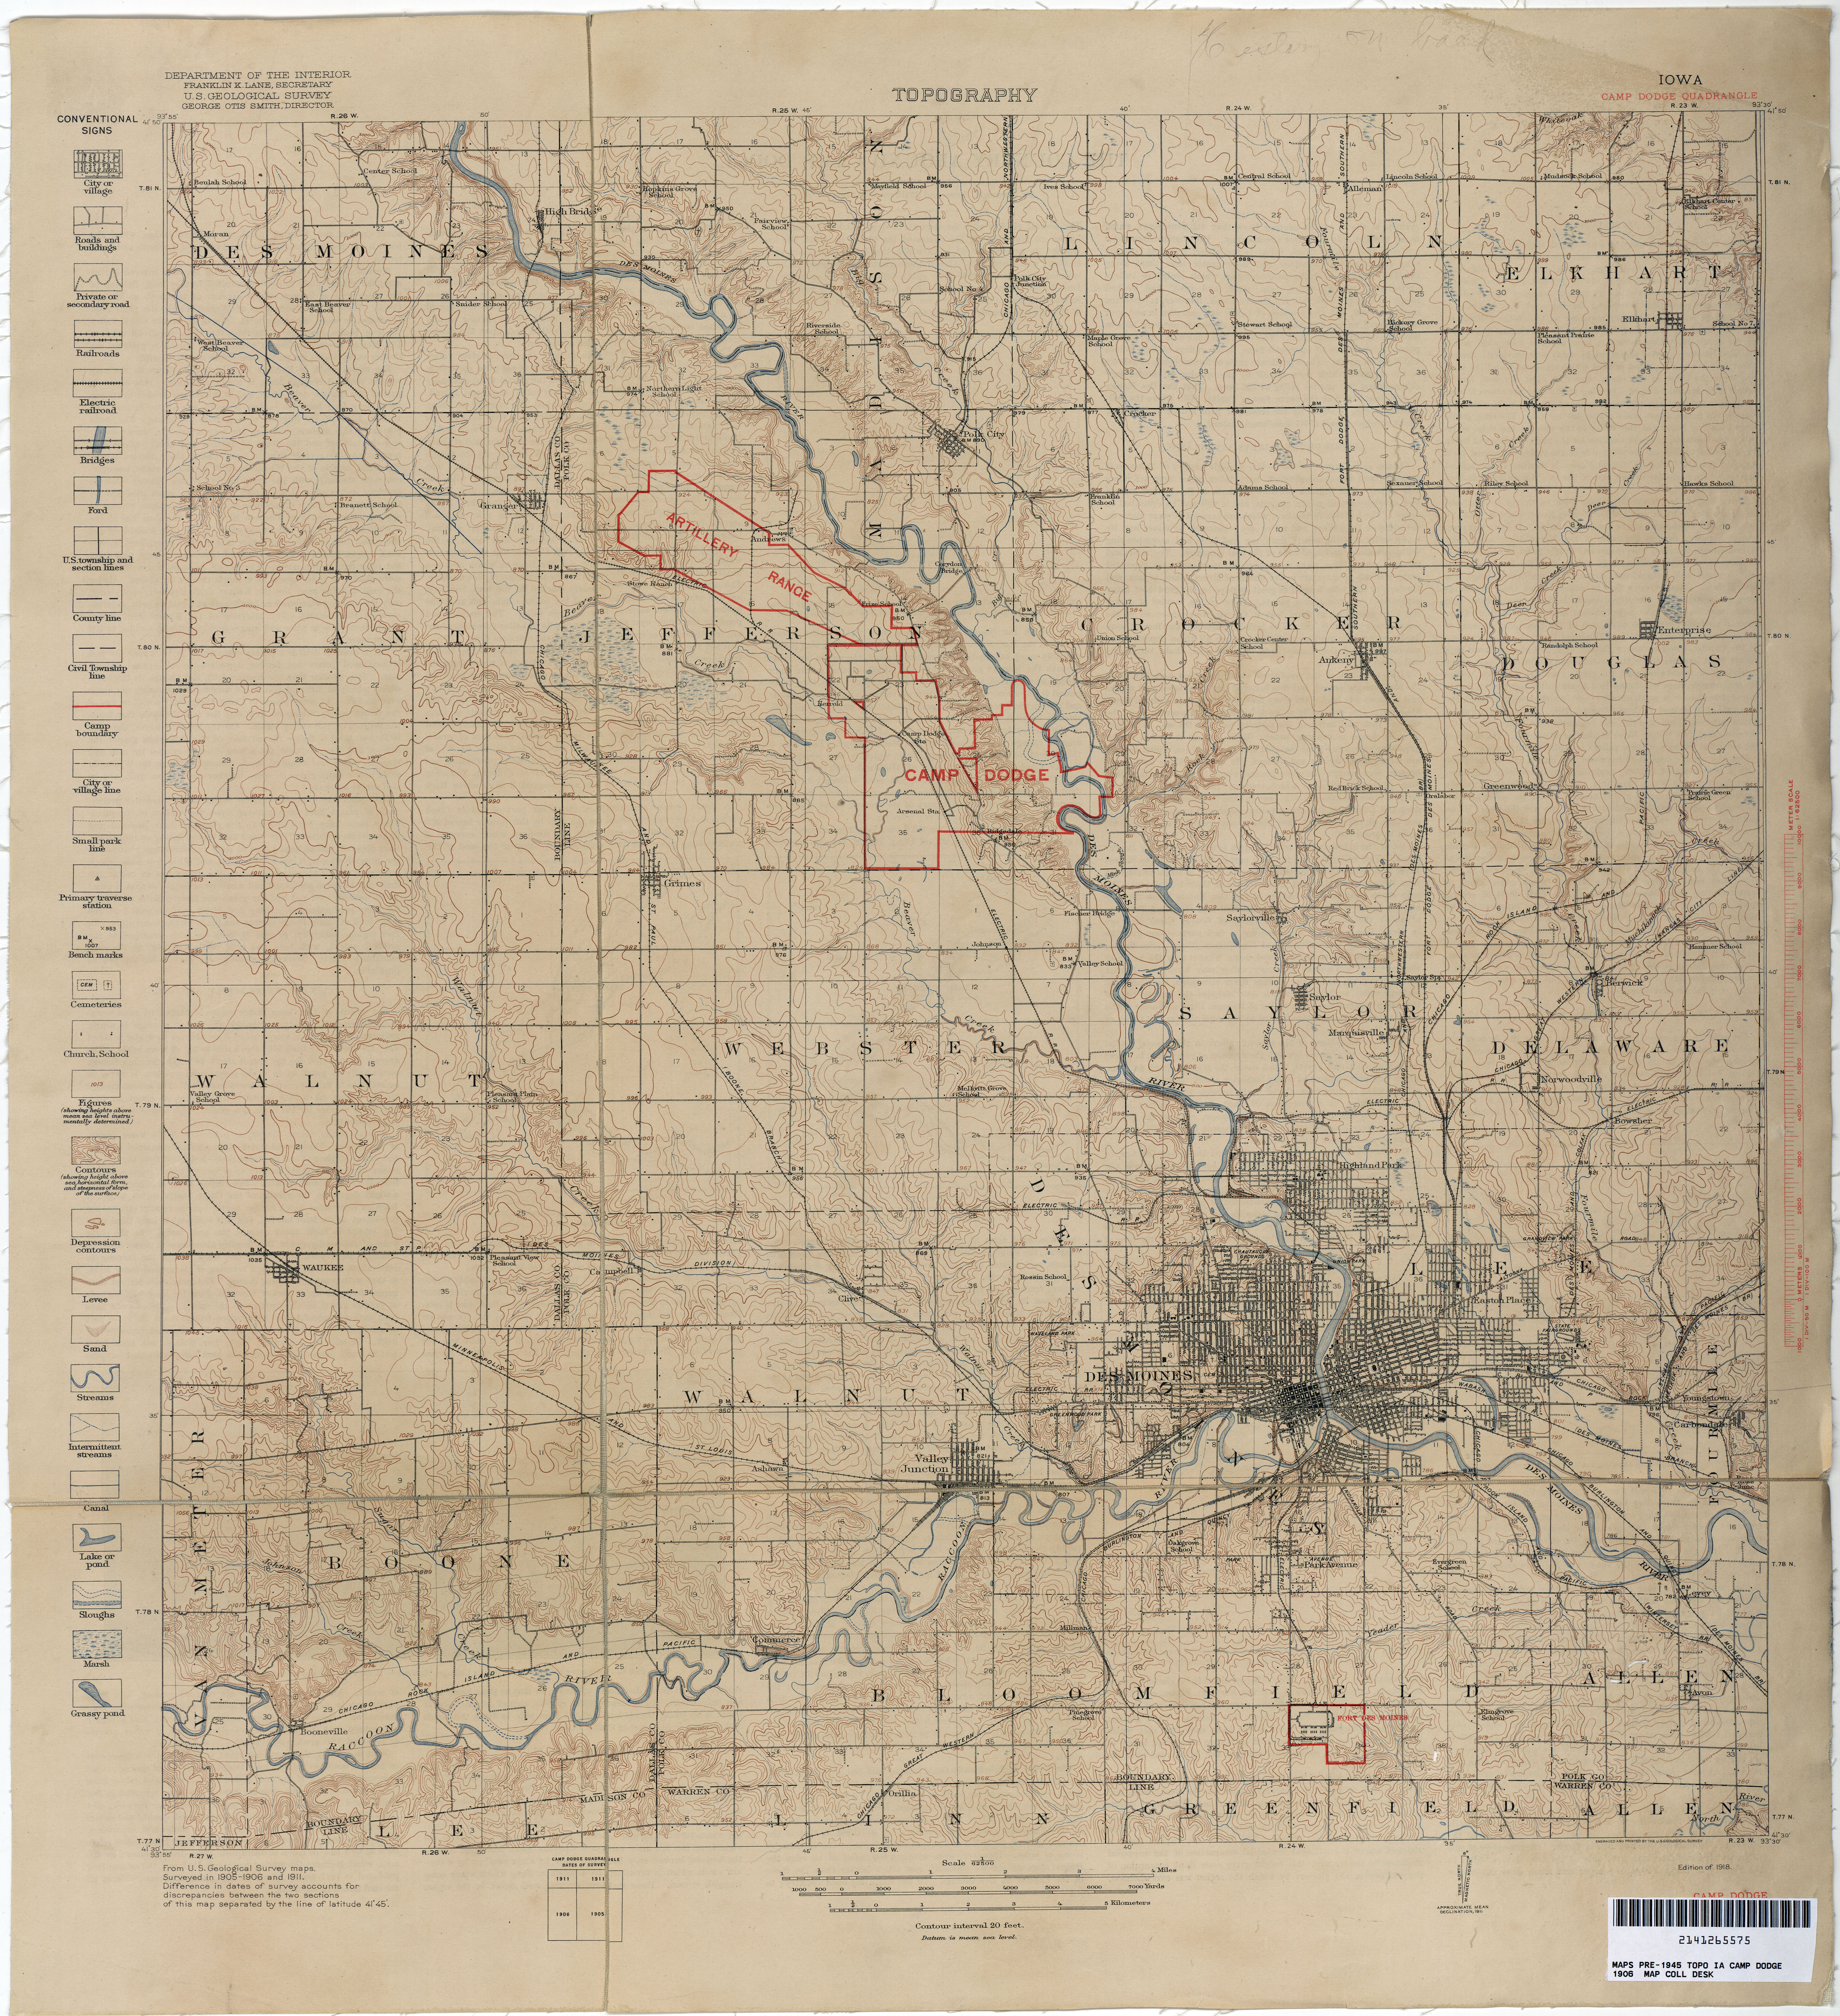 Iowa Historical Topographic Maps PerryCastañeda Map Collection - Iowa map